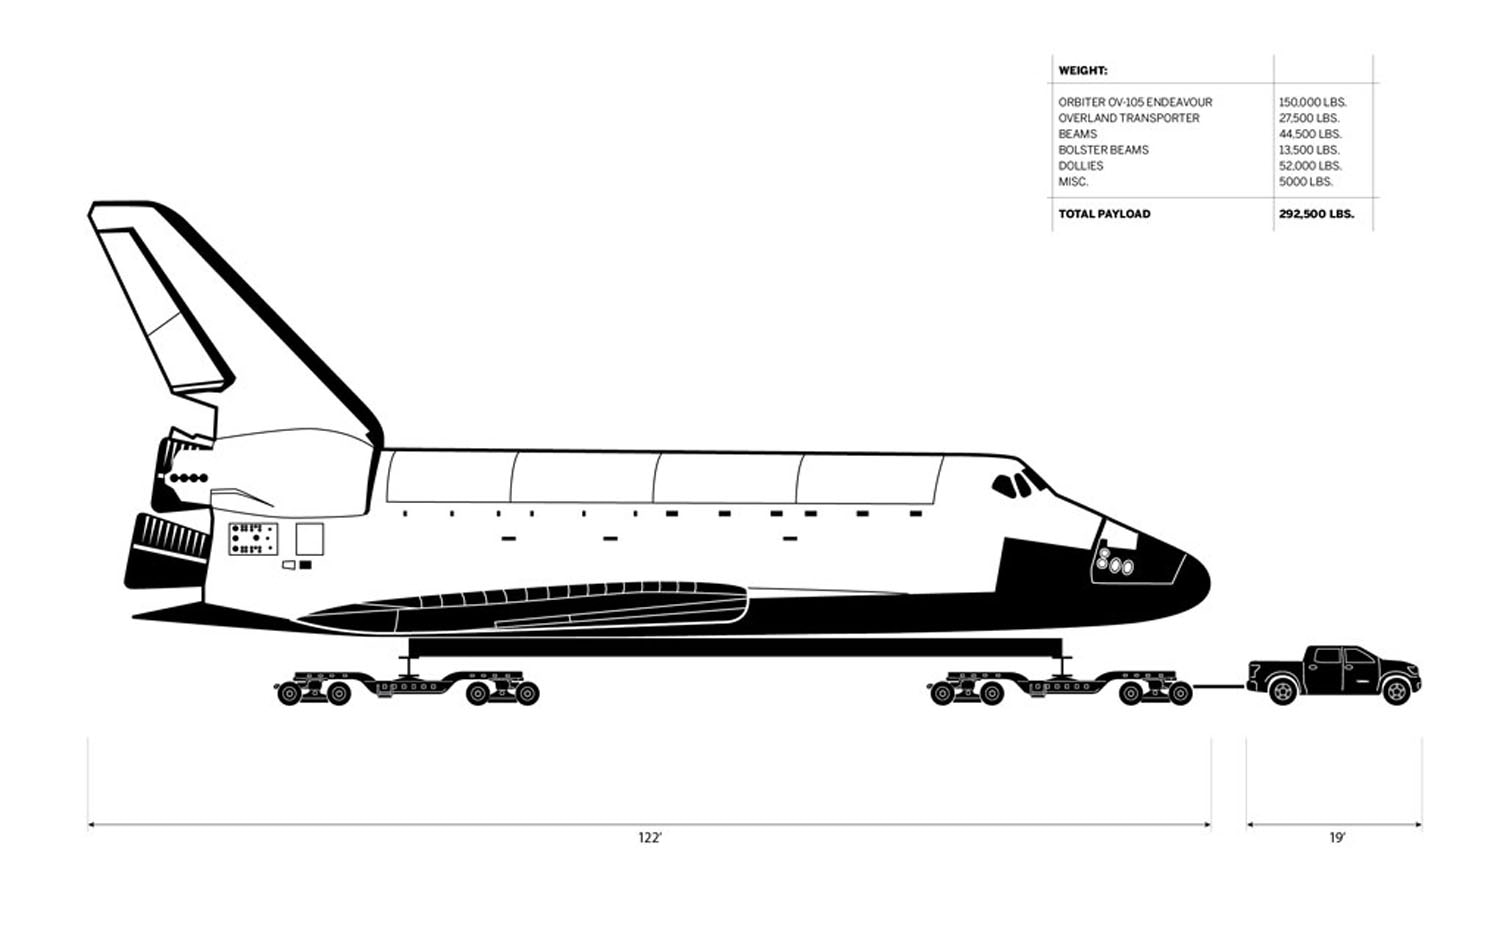 Toyota Will Pull Space Shuttle Endeavor With Toyota